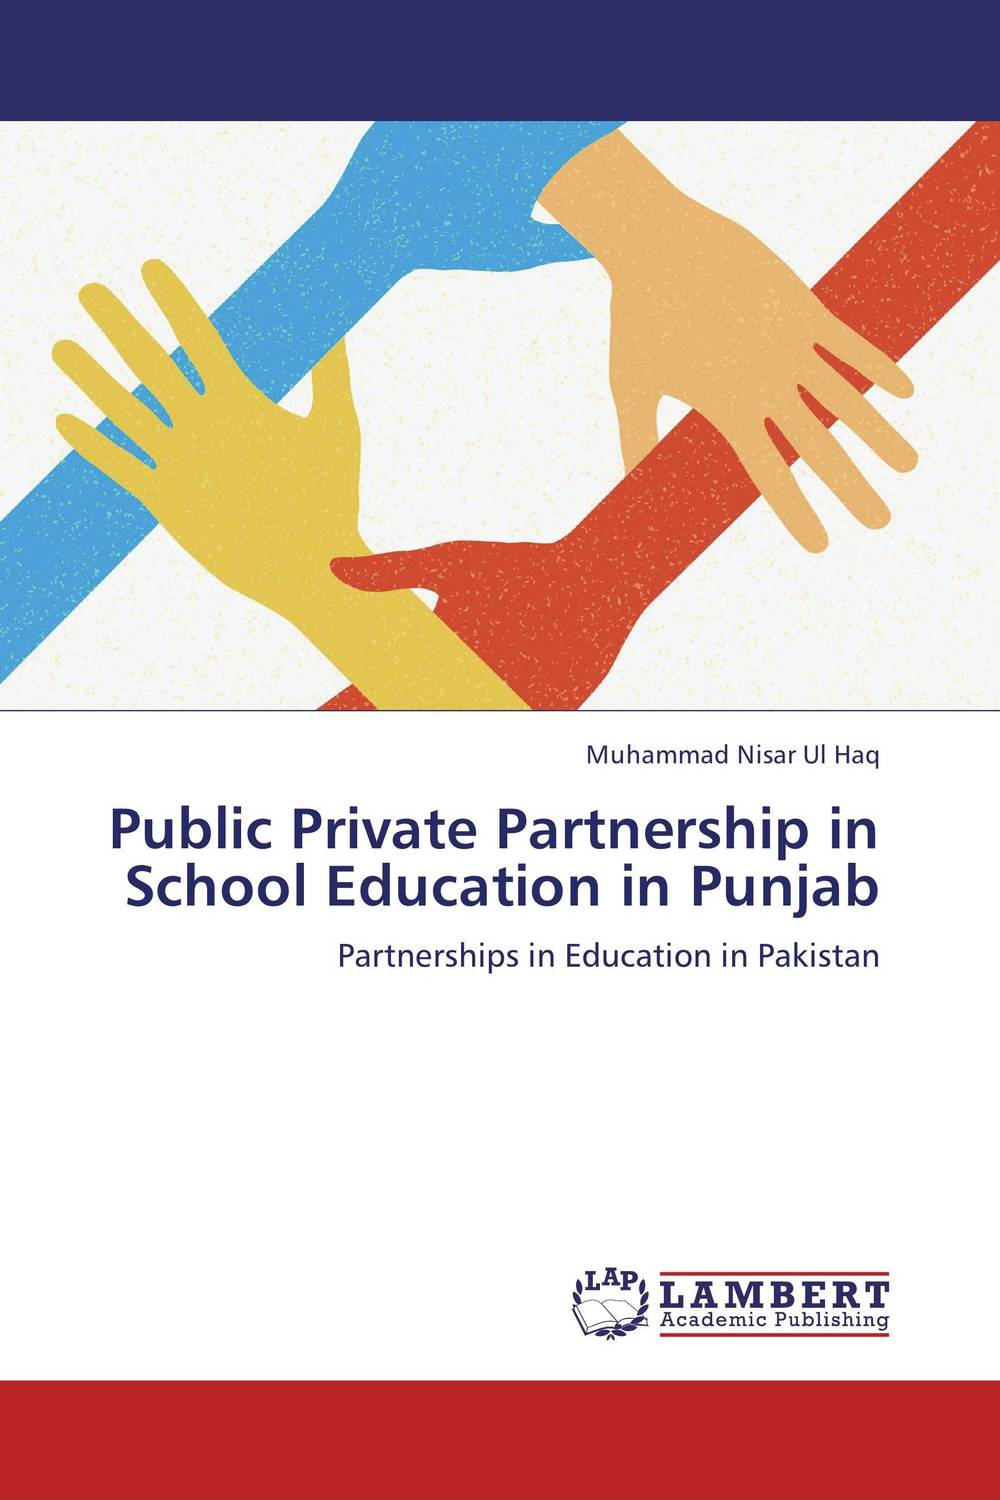 Public Private Partnership in School Education in Punjab